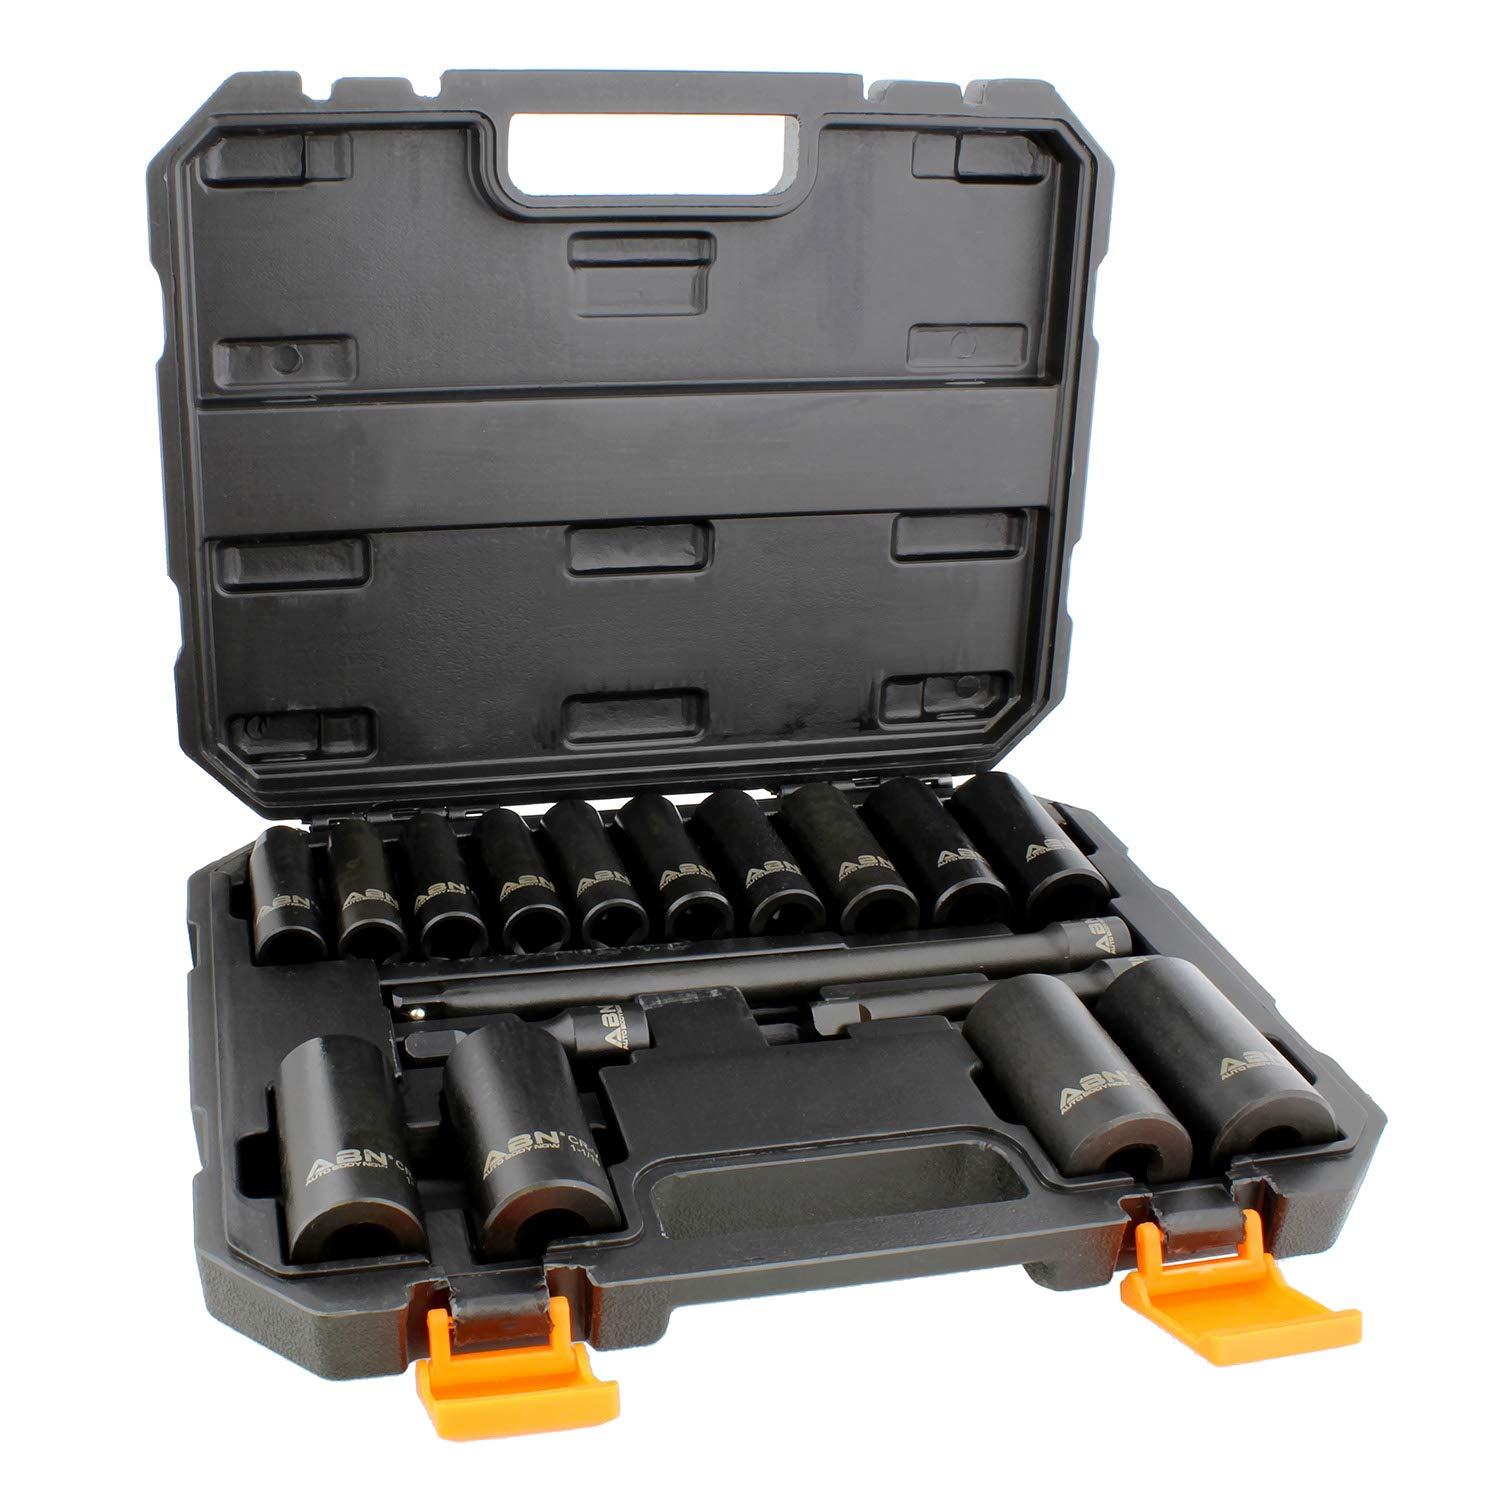 ABN Impact Socket Set - 17 Piece 1/2 Inch Deep Impact Driver Sockets and Extension Bars, 6 Point SAE Socket Set by ABN